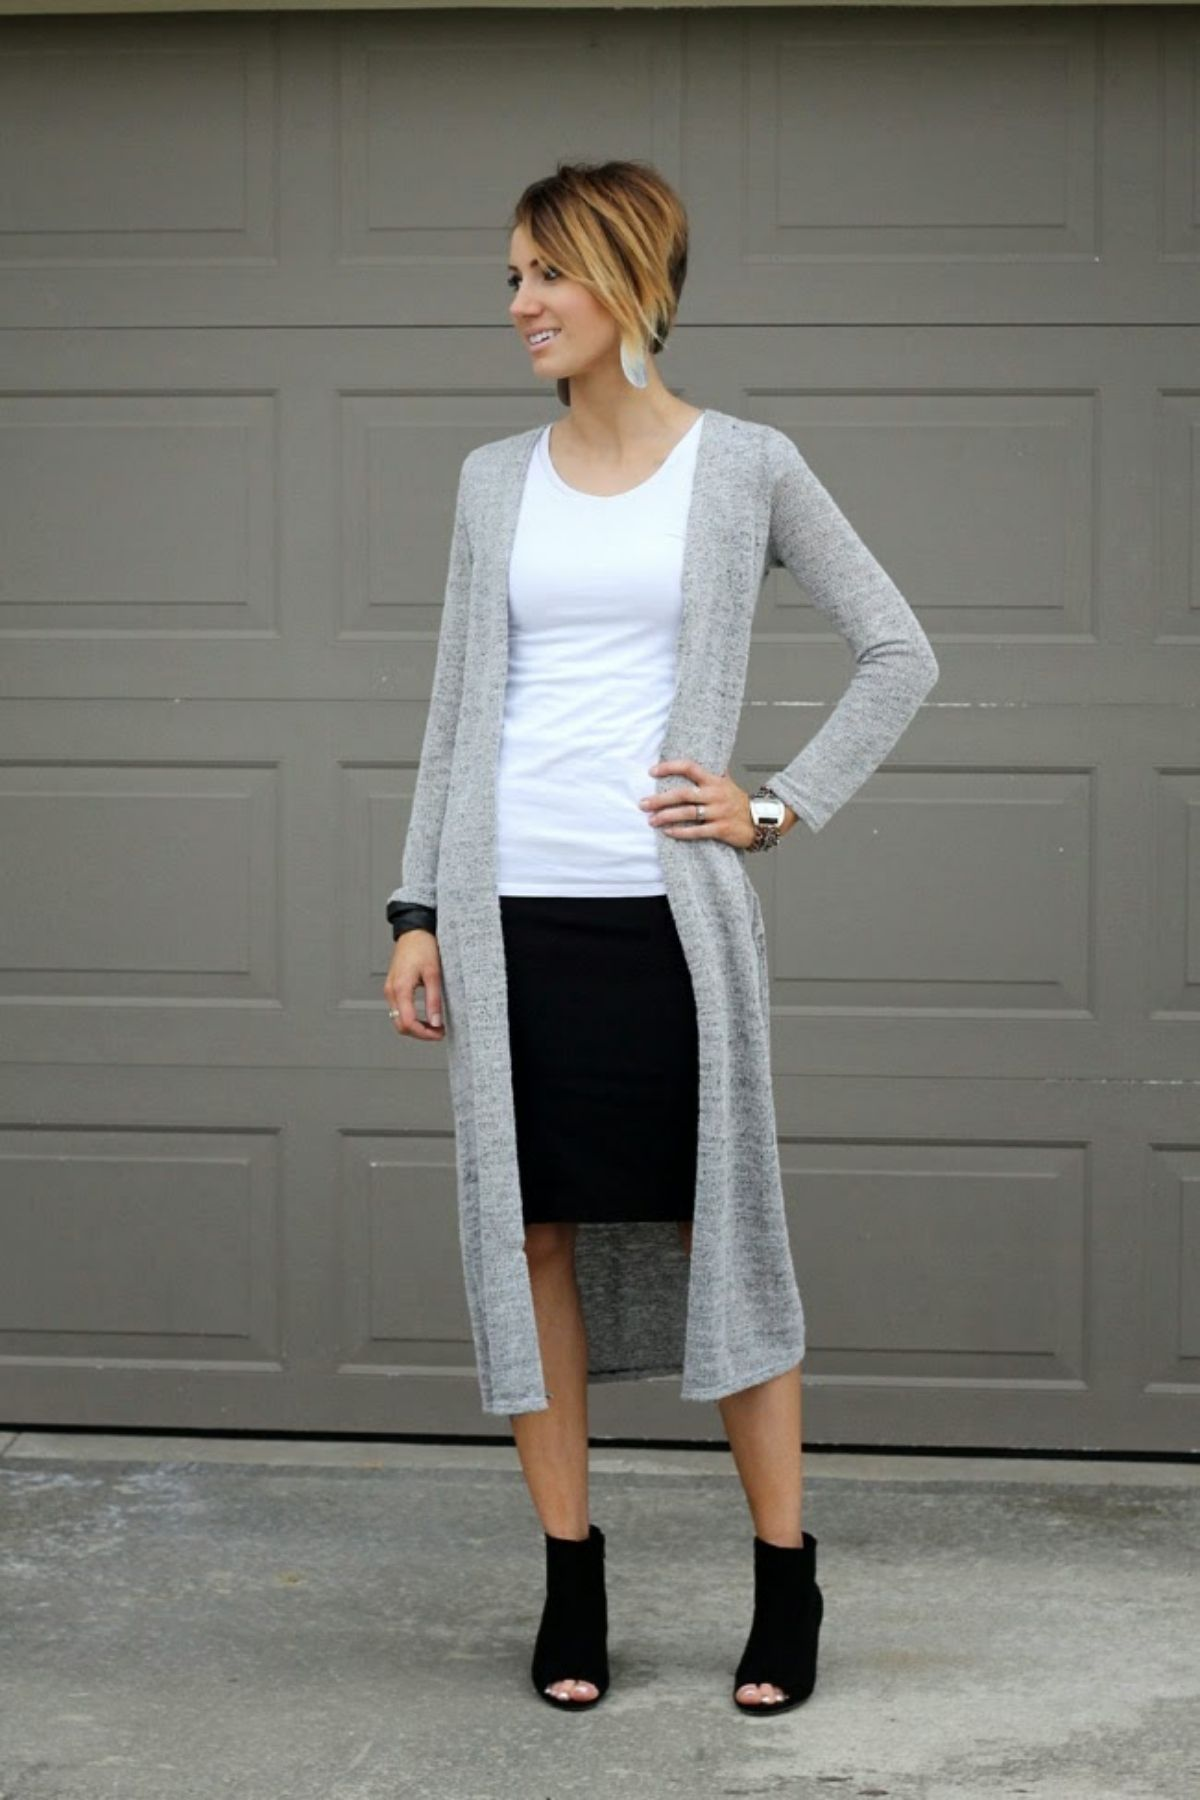 outfit with skirt and cardigan